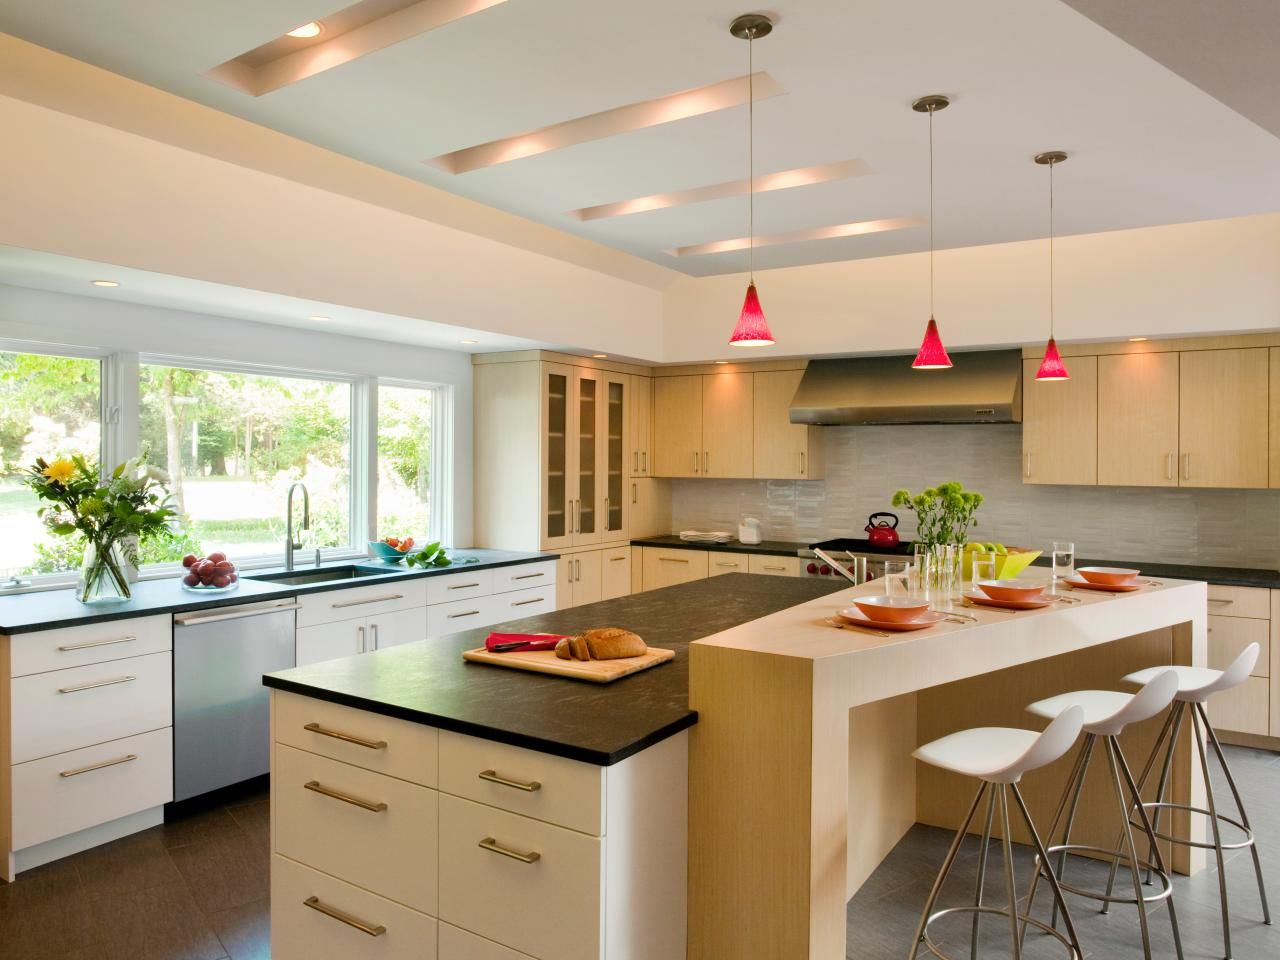 Ushaped kitchen design ideas pictures u ideas from countertops